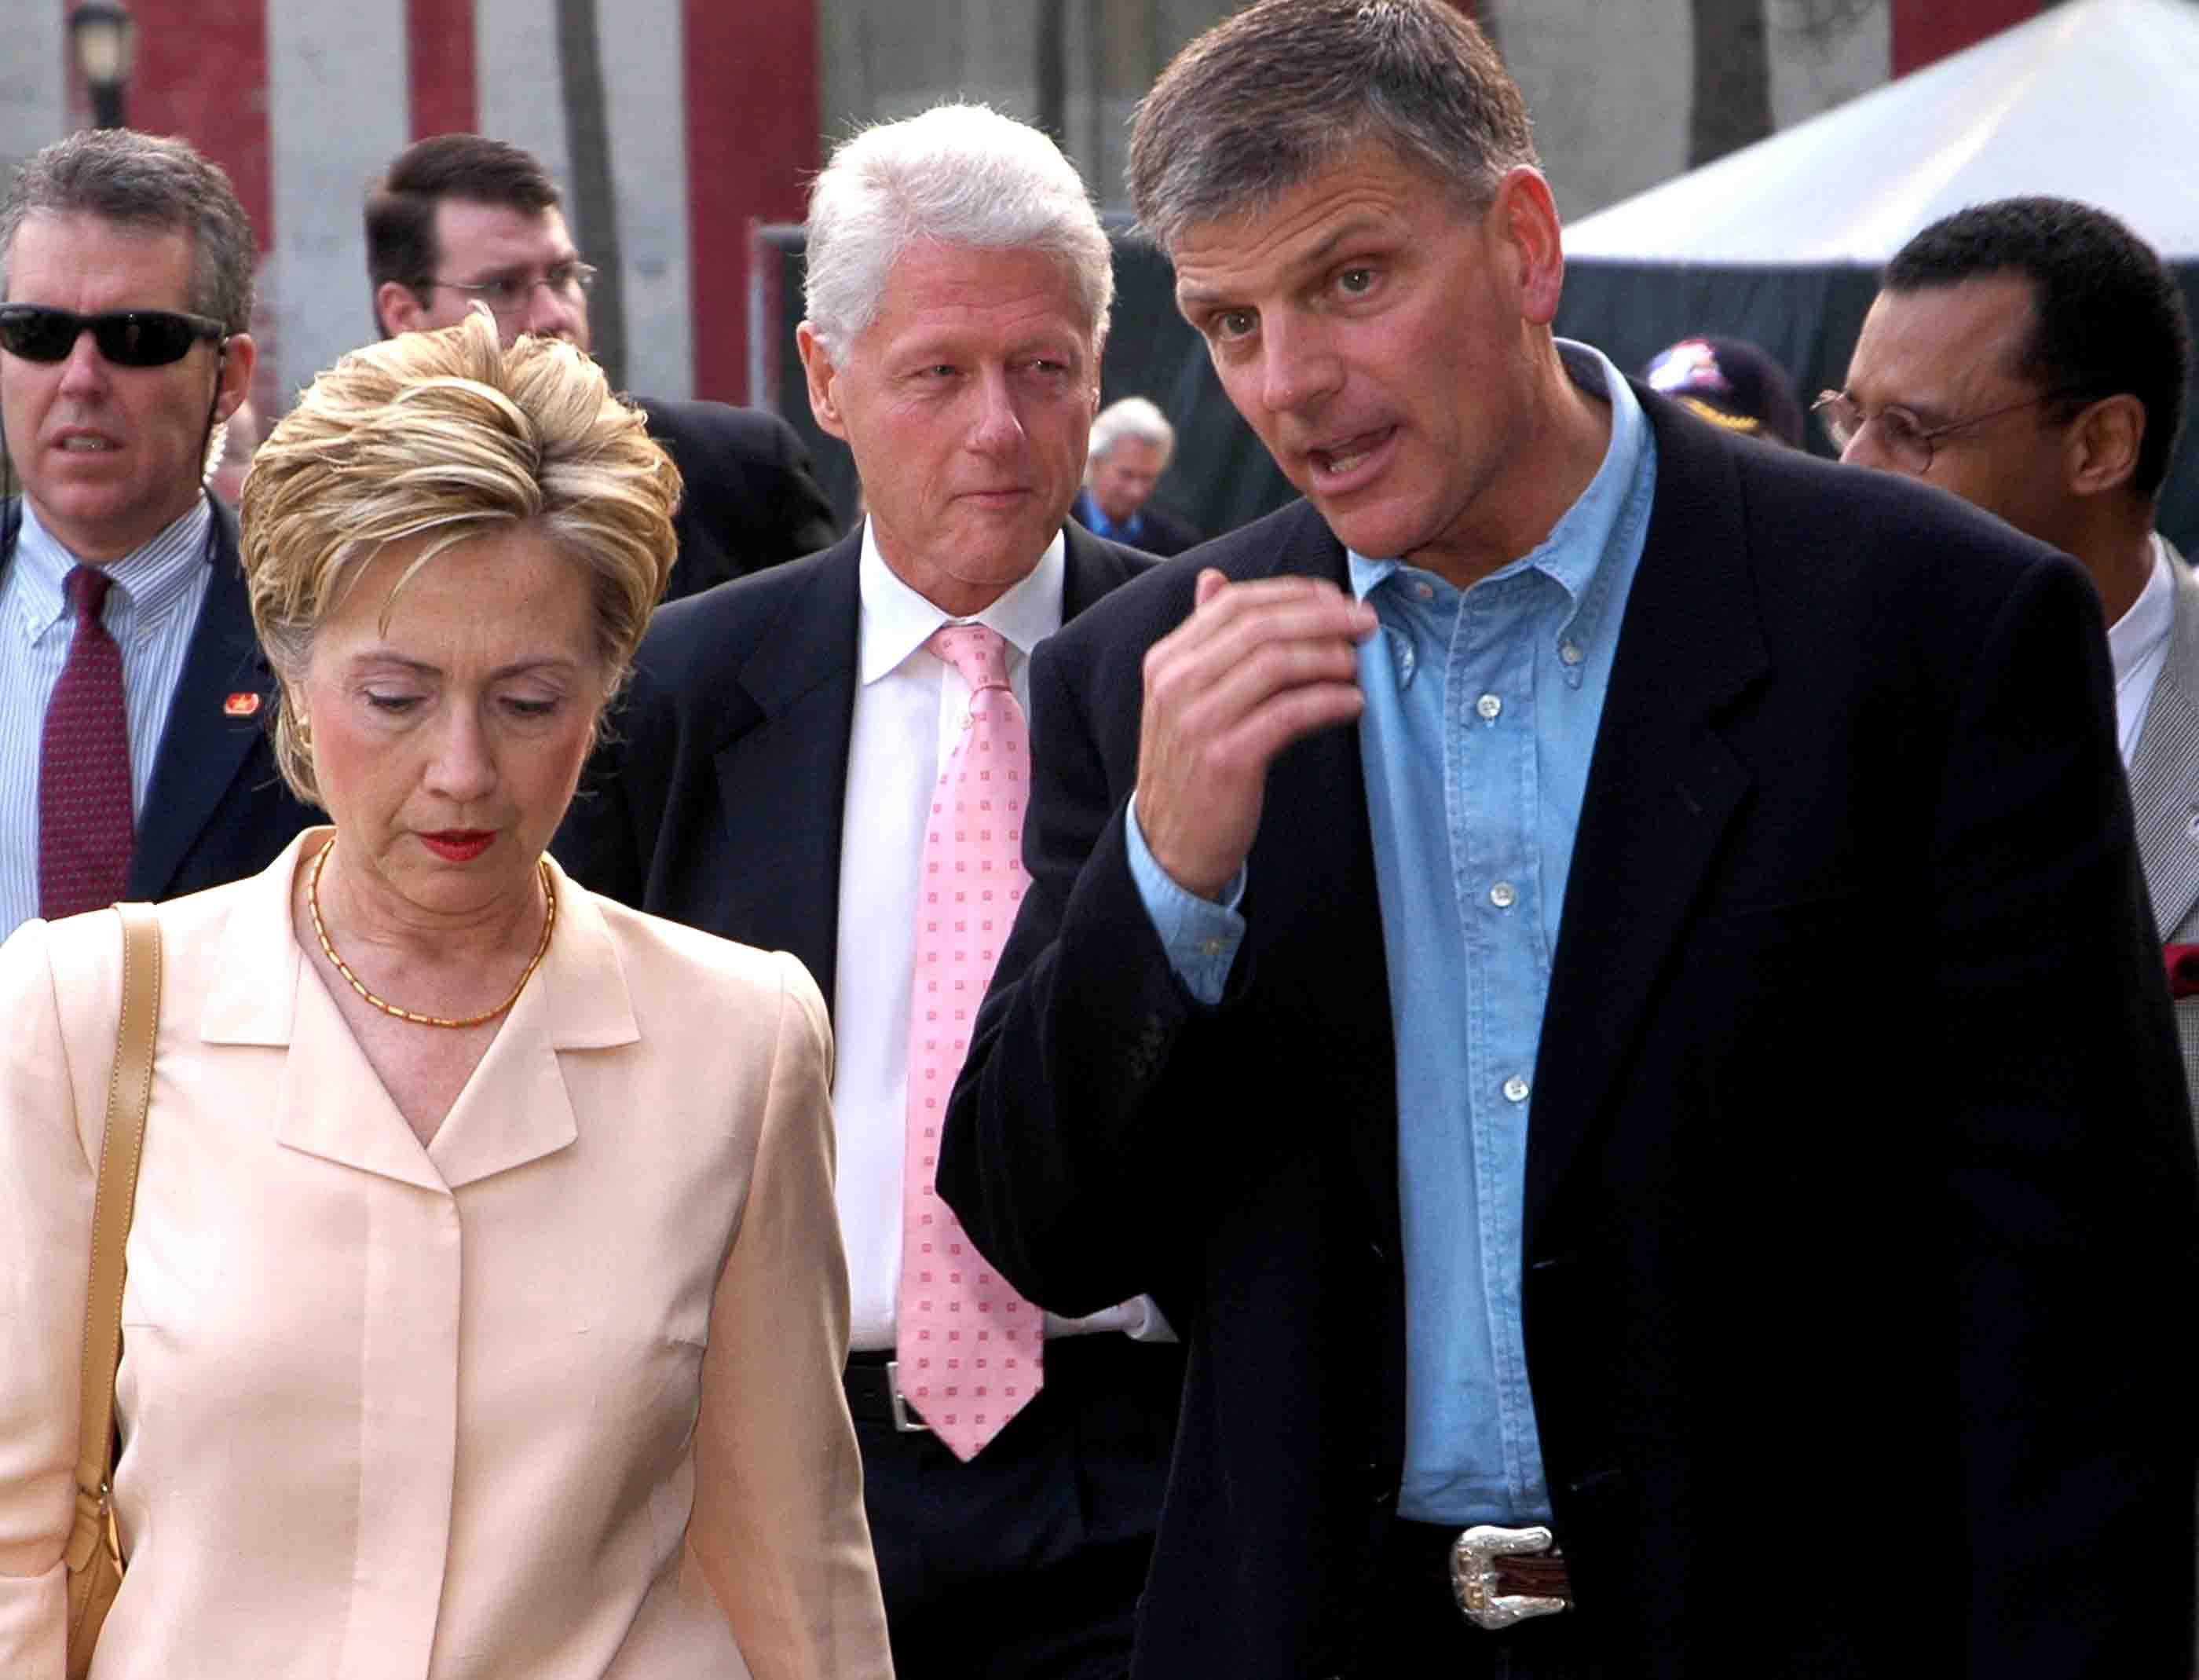 Hilary Clinton says that she has long admired evangelist Billy Graham, but voters are uncertain about her faith. Here she walks with Franklin Graham, with her husband and Rev. A.R. Bernard of the Christian Cultural Center in the background. At Billy Graham Crusade, New York City, 2006. Photo: Tony Carnes/A Journey through NYC religions